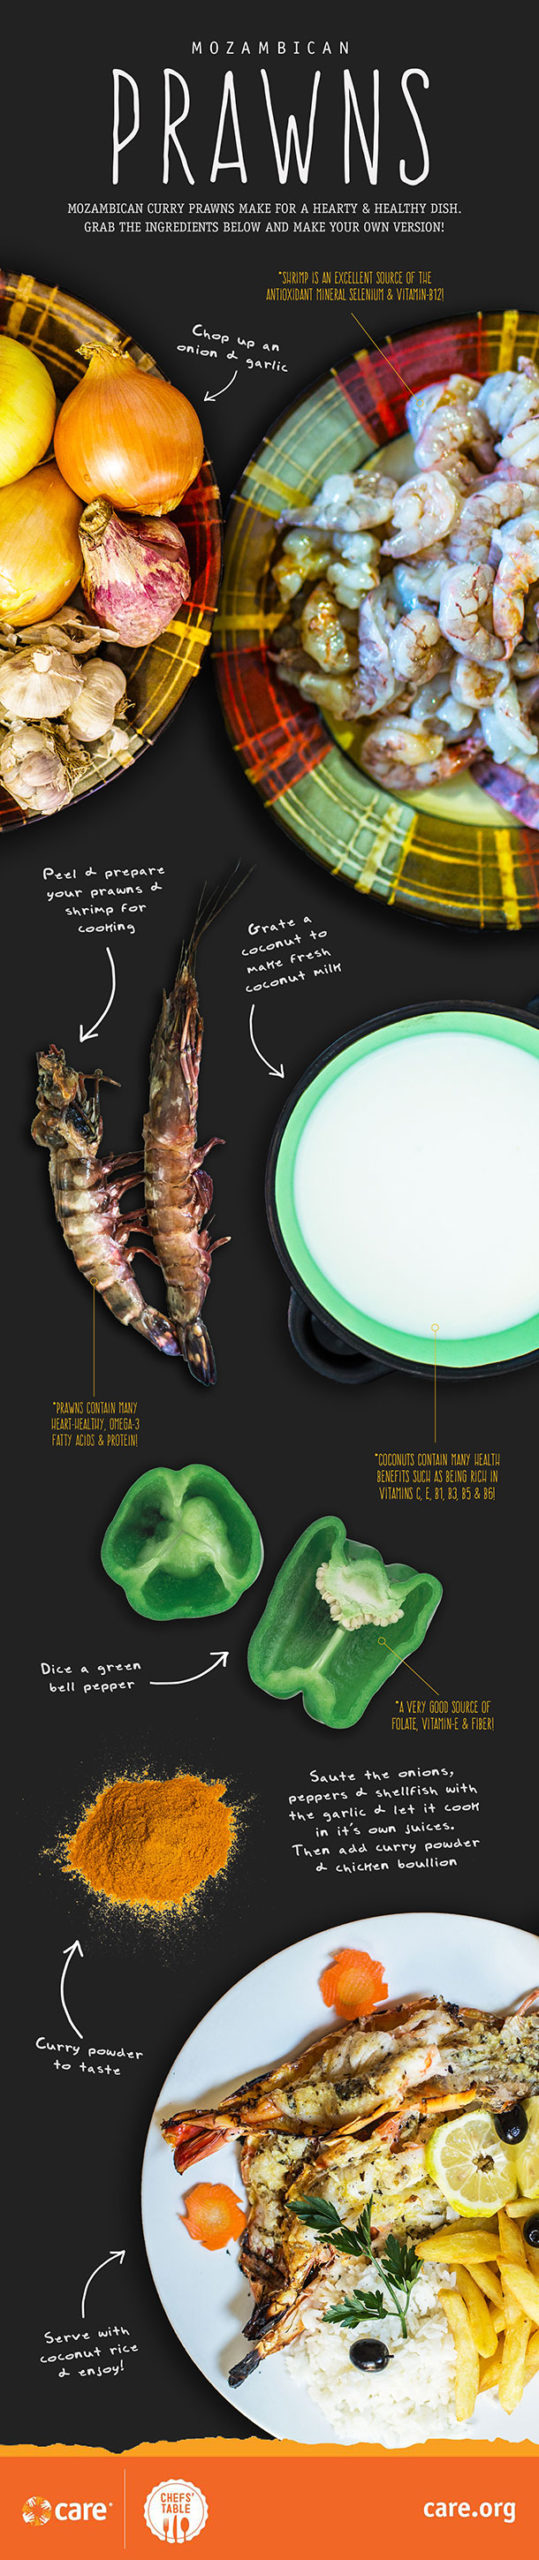 A graphic featuring ingredients and instructions to make Mozambican curry prawns.